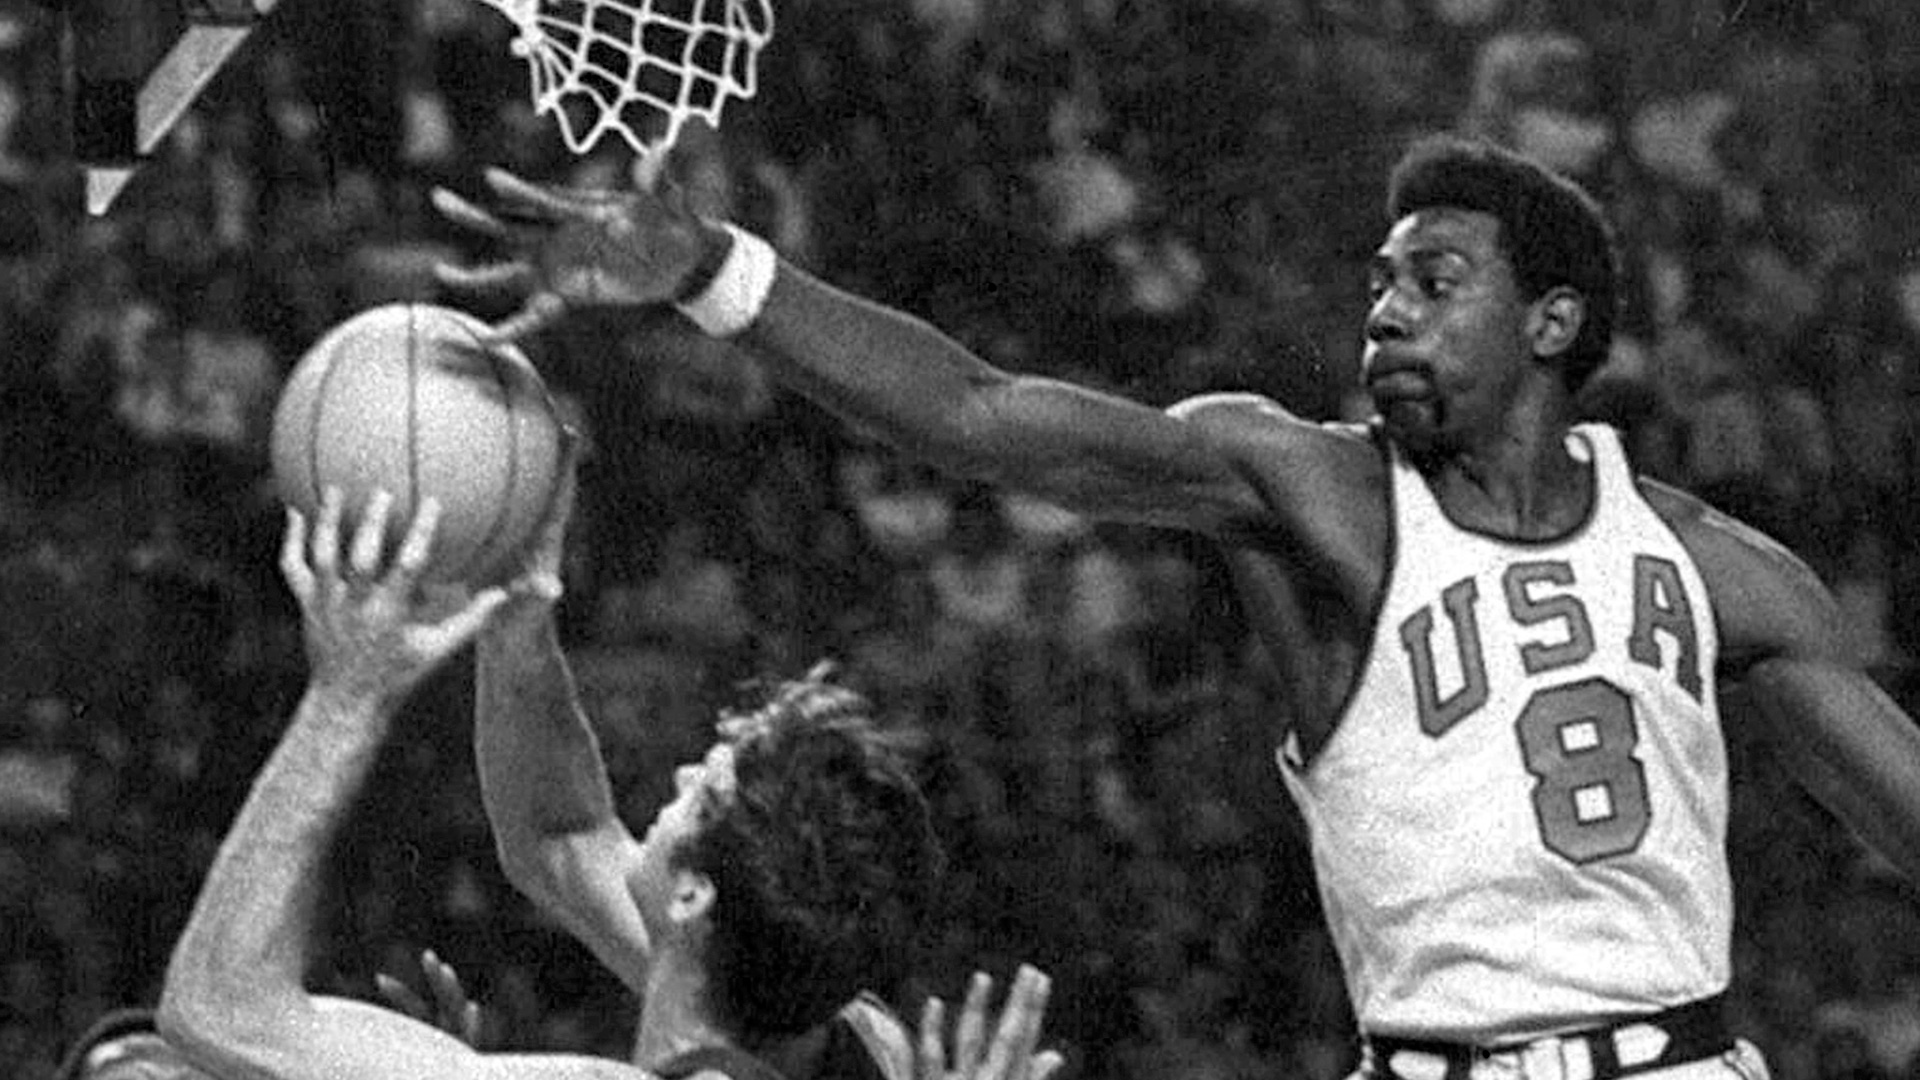 Spencer Haywood s Hall of Fame eyes opened by fiery Jesse Owens